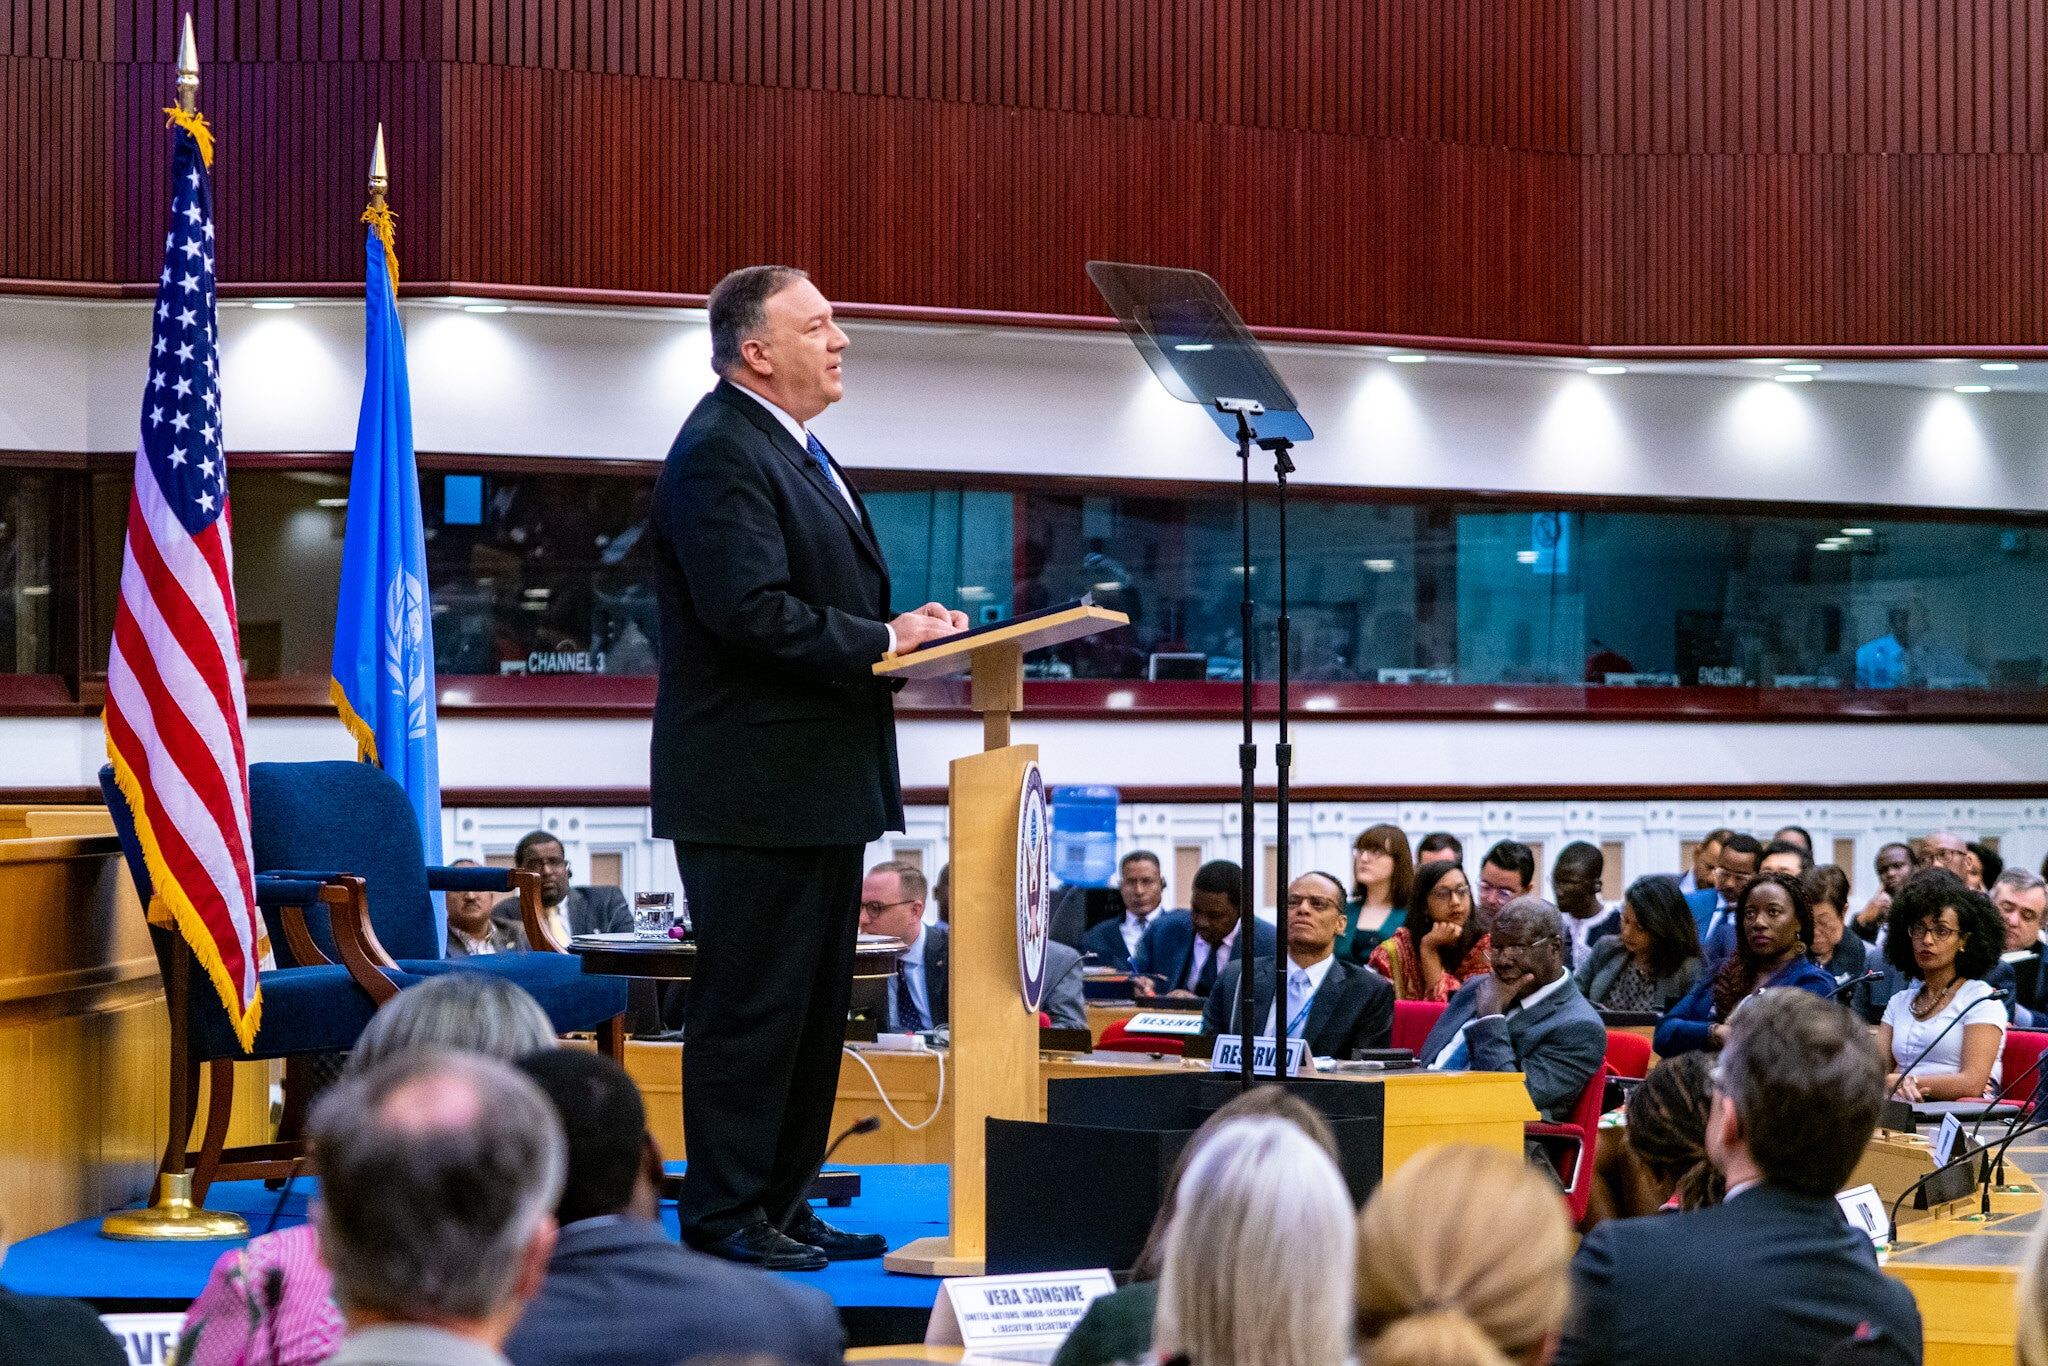 """Secretary of State Michael R. Pompeo delivers a speech on """"Liberating Africa's Entrepreneurs,"""" in Addis Ababa, Ethiopia, on February 19, 2020. [State Department Photo by Ron Przysucha/ Public Domain]"""